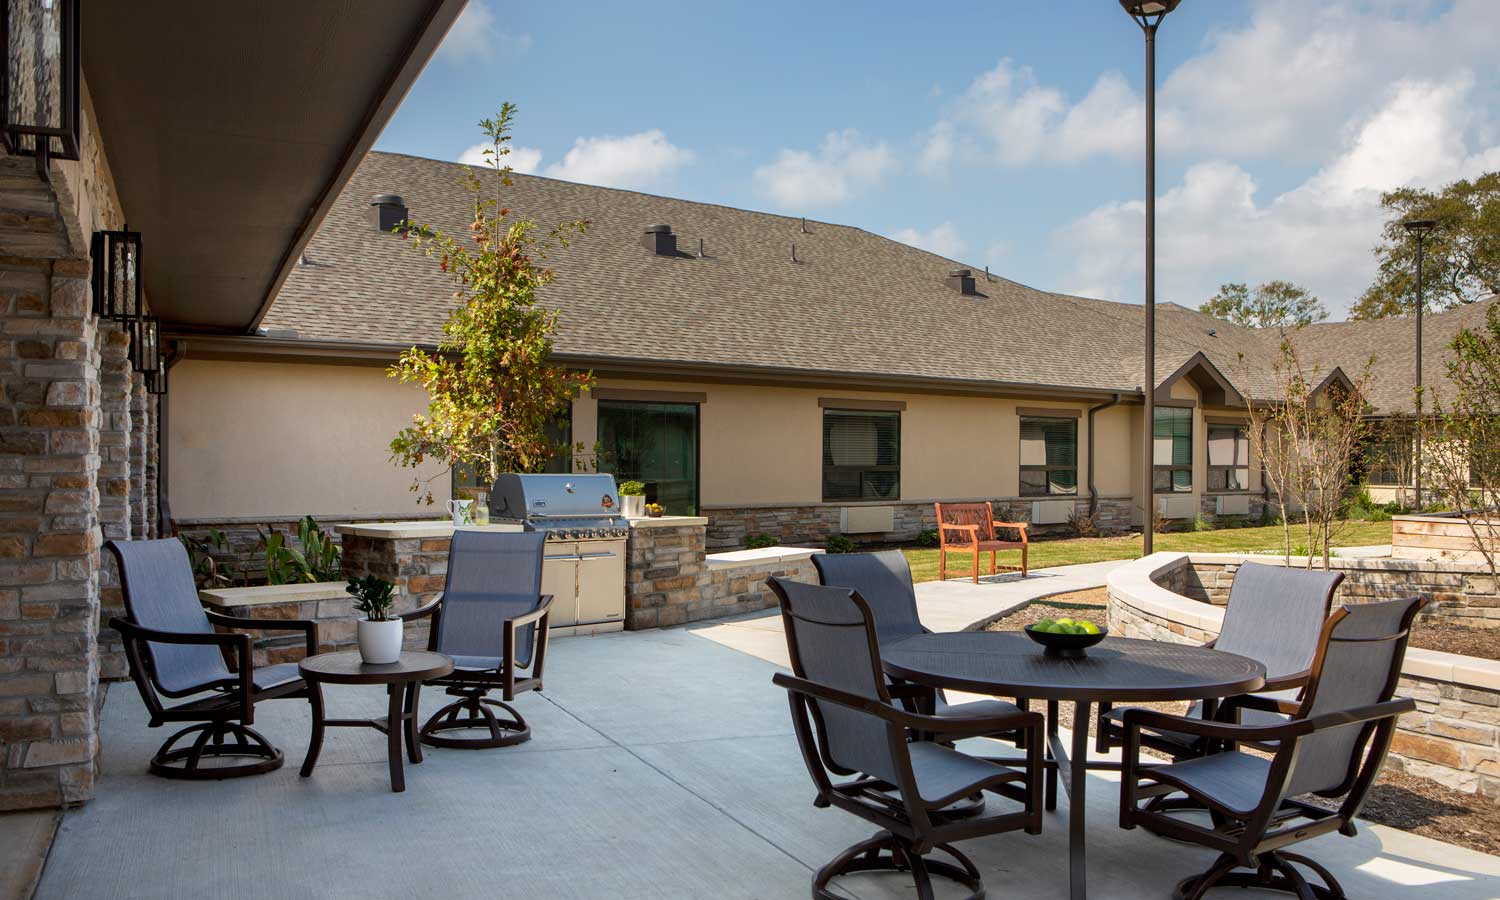 Copy of Assisted Living Courtyard